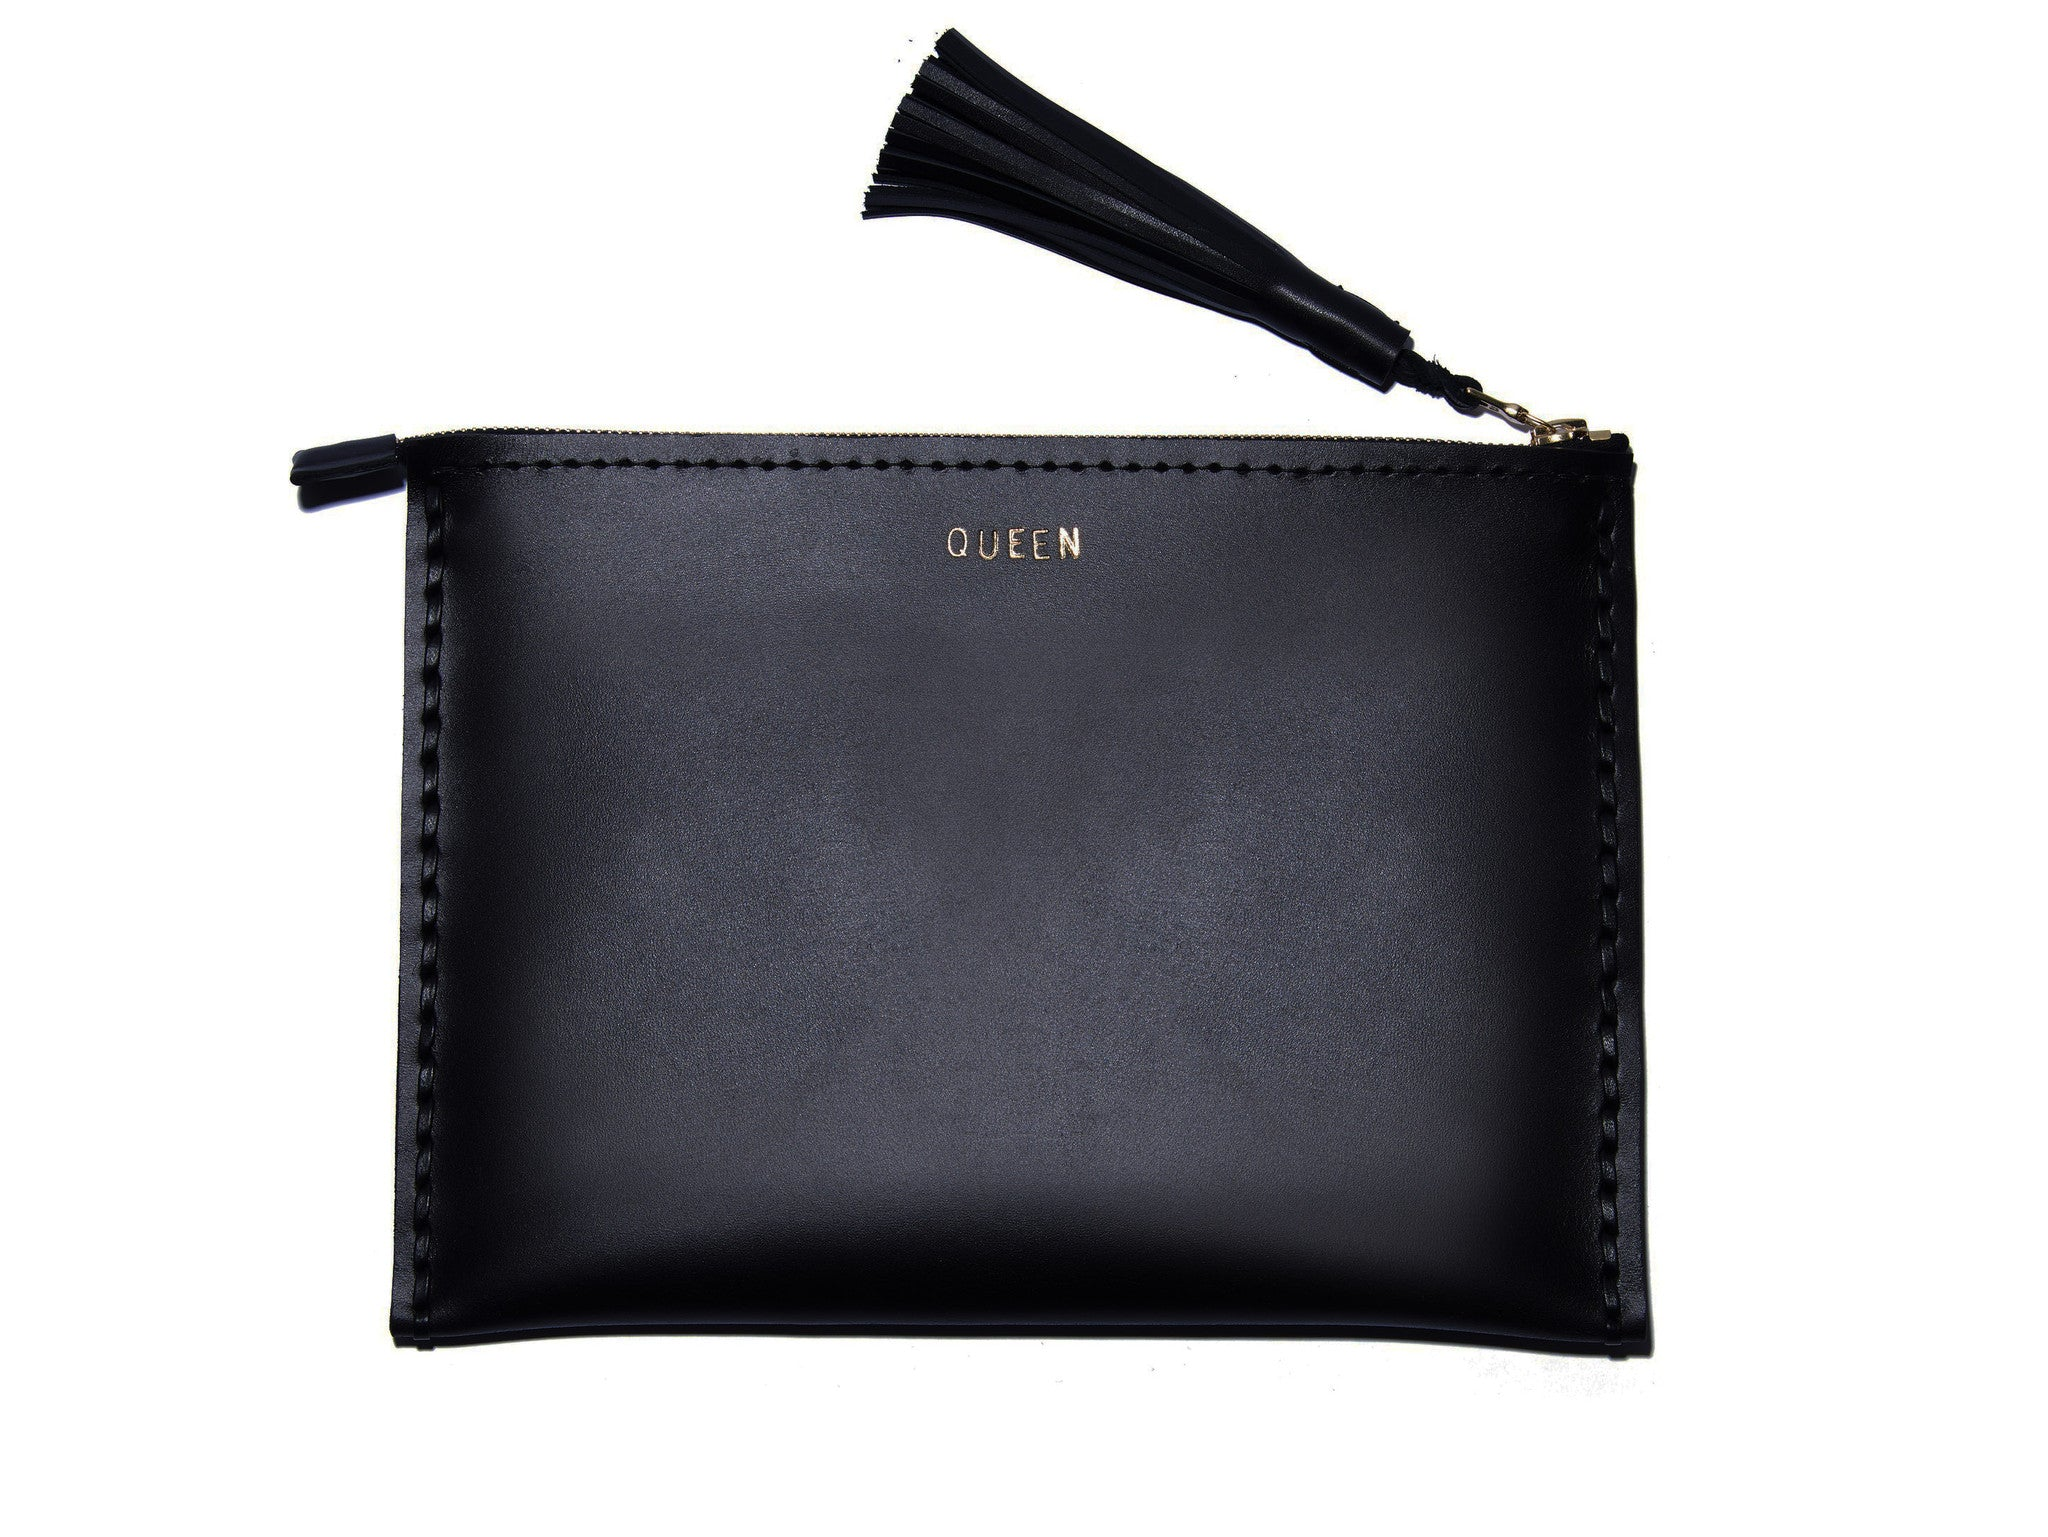 QUEEN Leather Medium Laced Clutch Pouch Custom Embossed Initial Letter Monogram Card Phone Wallet Clutch Wendy Nichol Designer Purse handbags Handmade in NYC New York City Zip Zipper Pouch Smooth Black High Quality Leather Fringe Tassel Gold Silver Foil